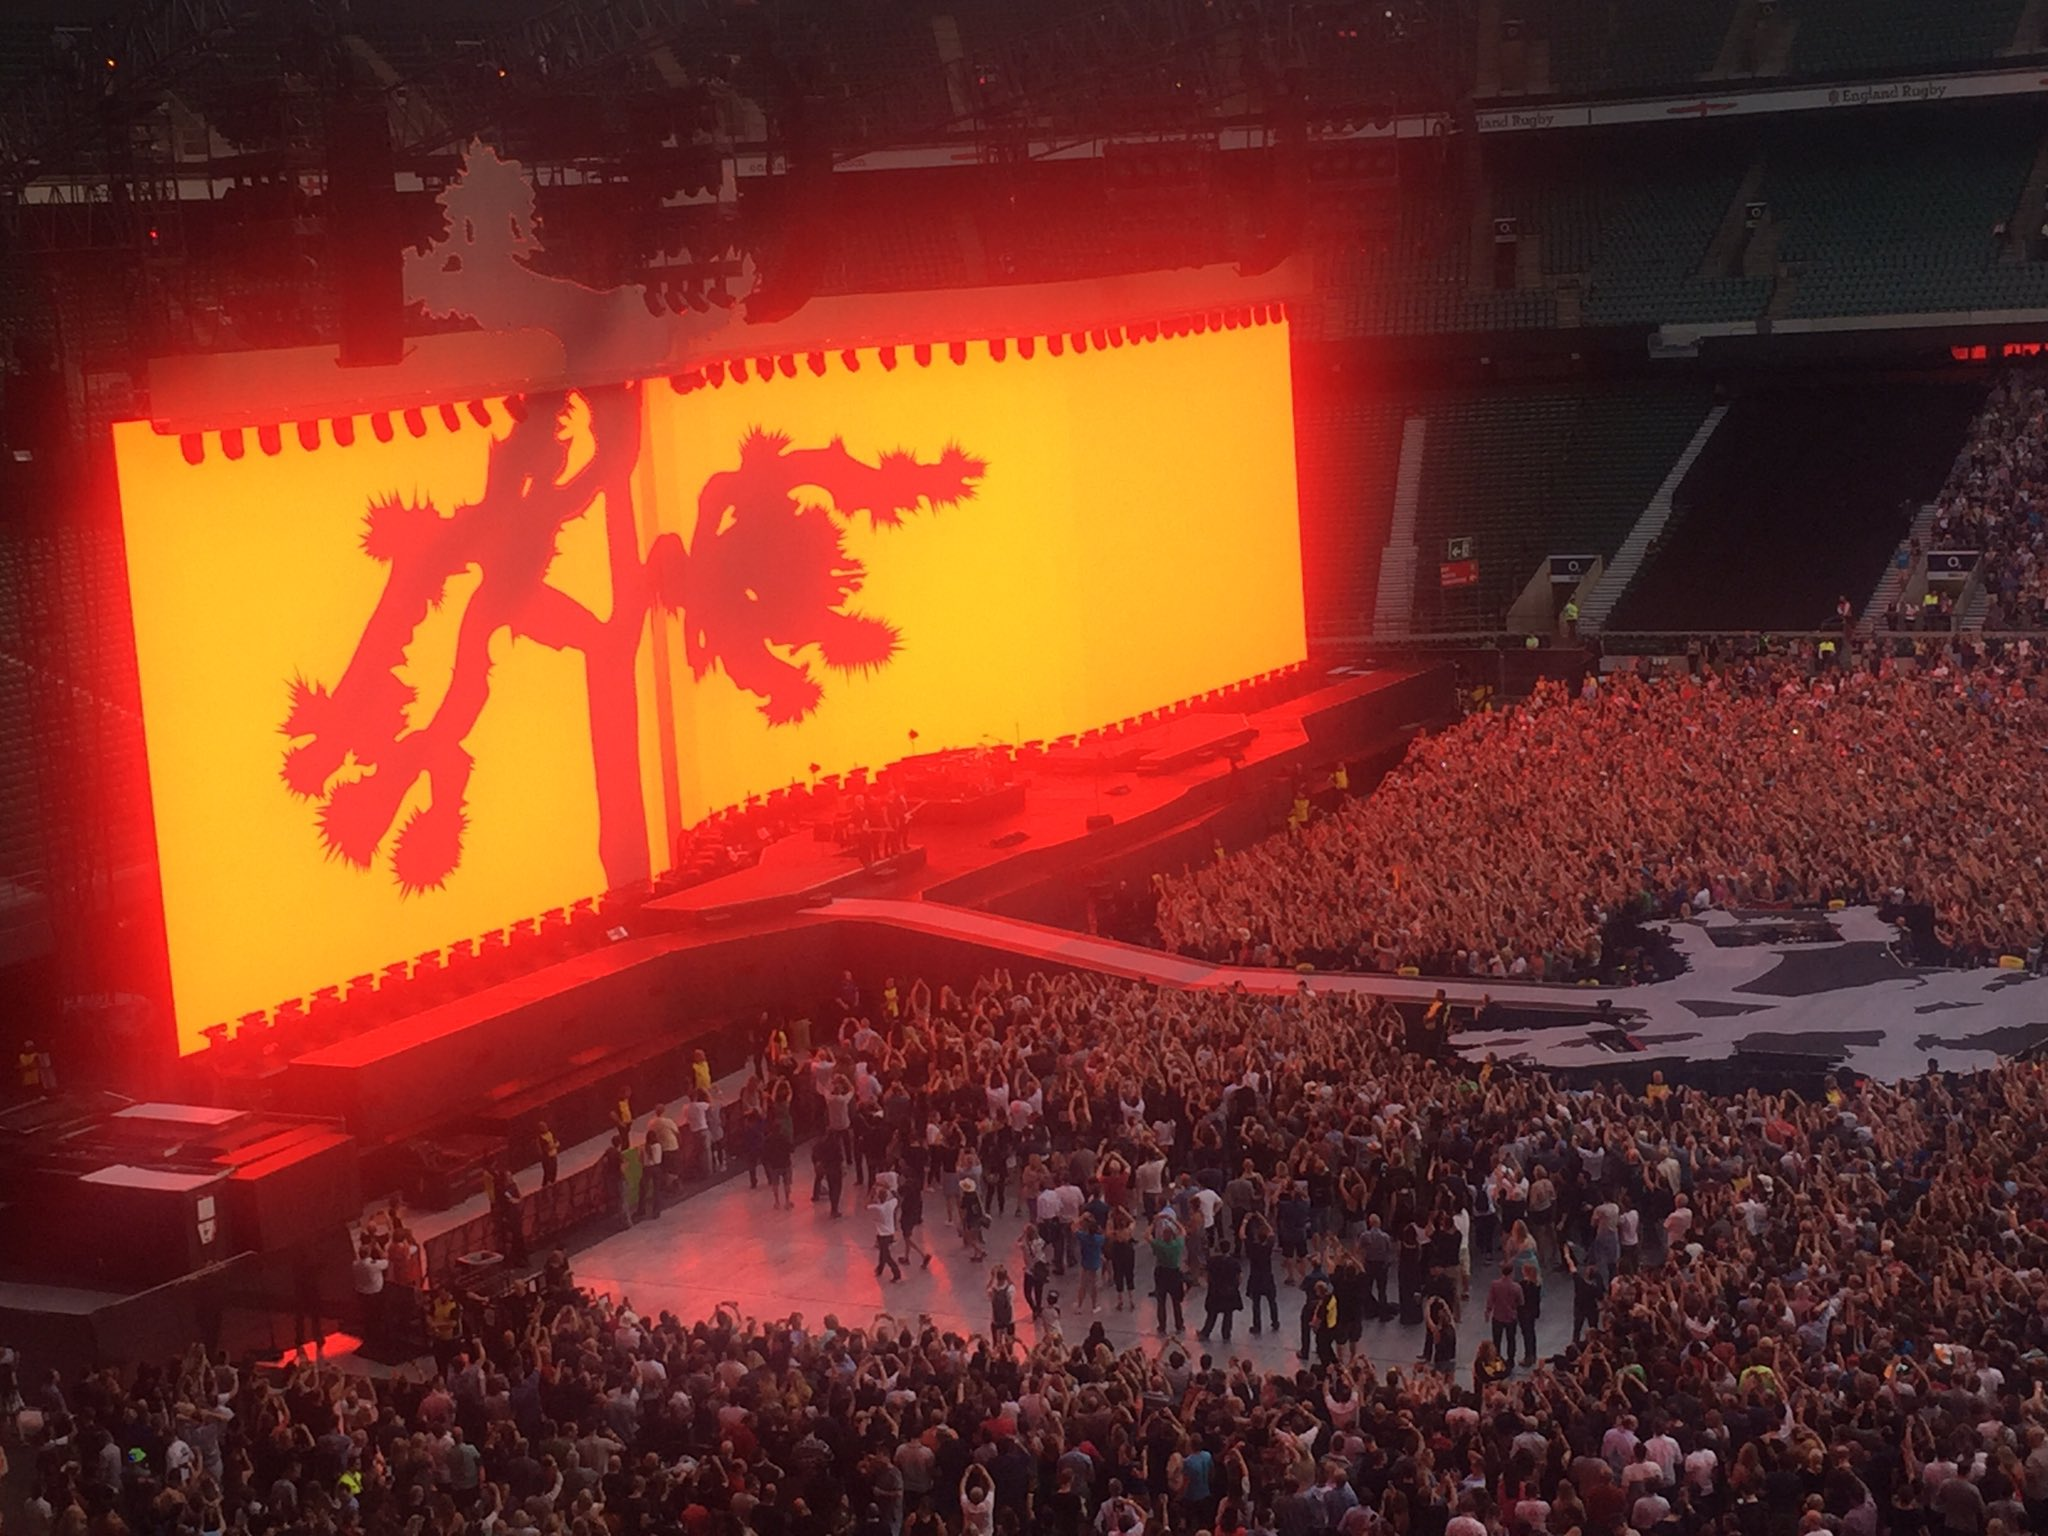 Huge night in every way. Fantastic performance as ever....30 yrs on but feels just like yesterday #U2JoshuaTreeTour2017 https://t.co/3cYz6Aj60c